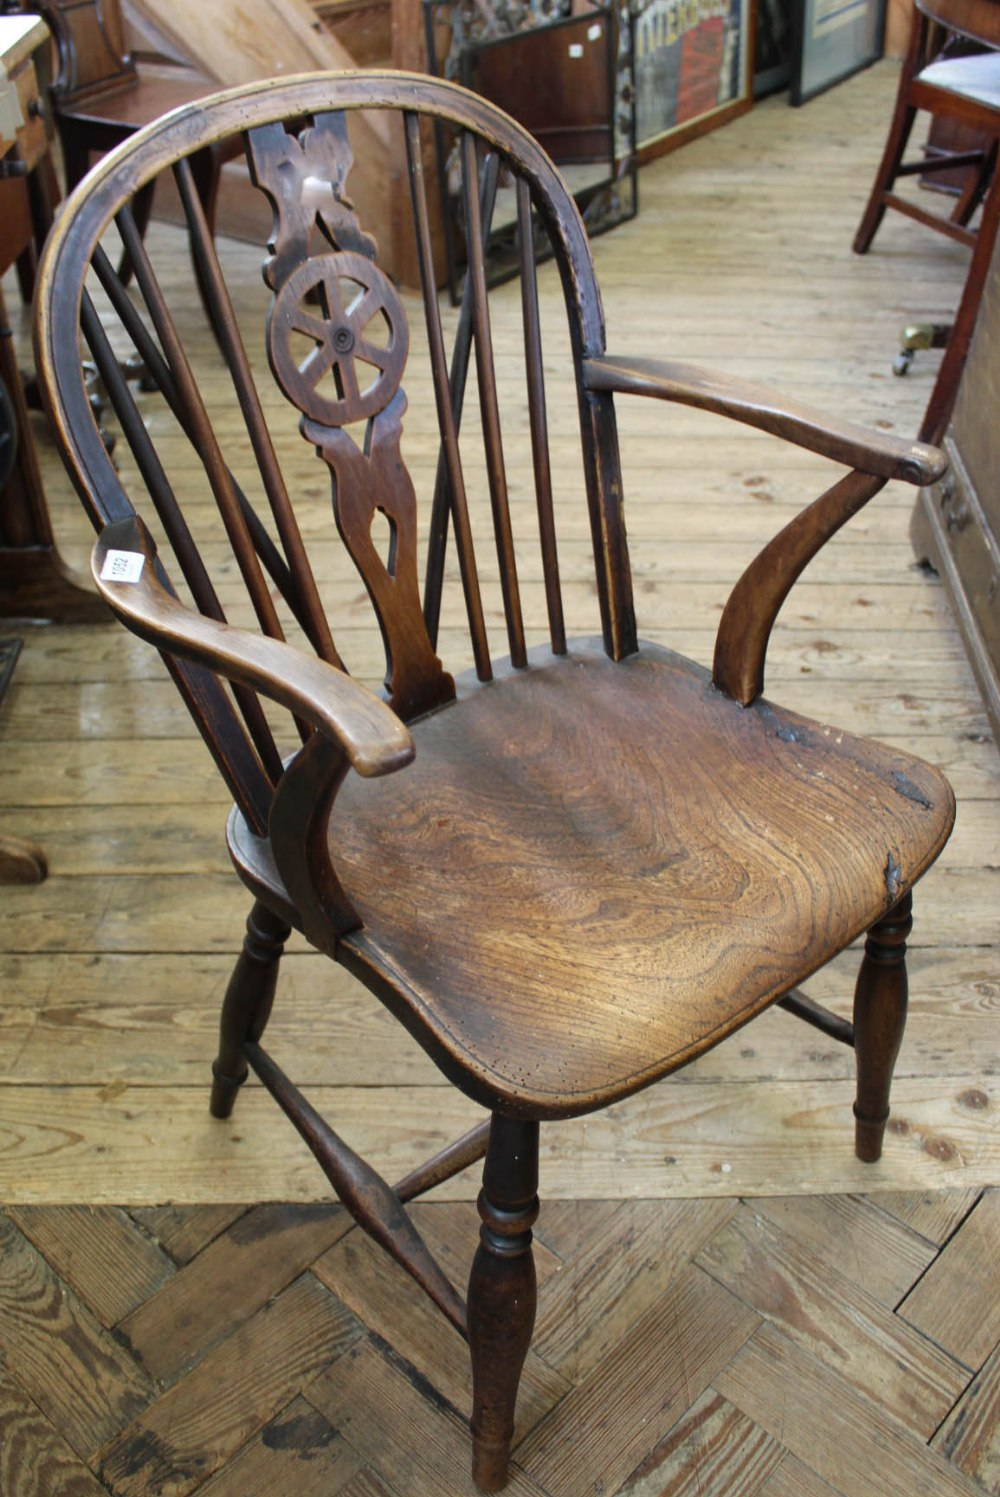 Lot 1052 - A 19th Century elm seat wheelback chair